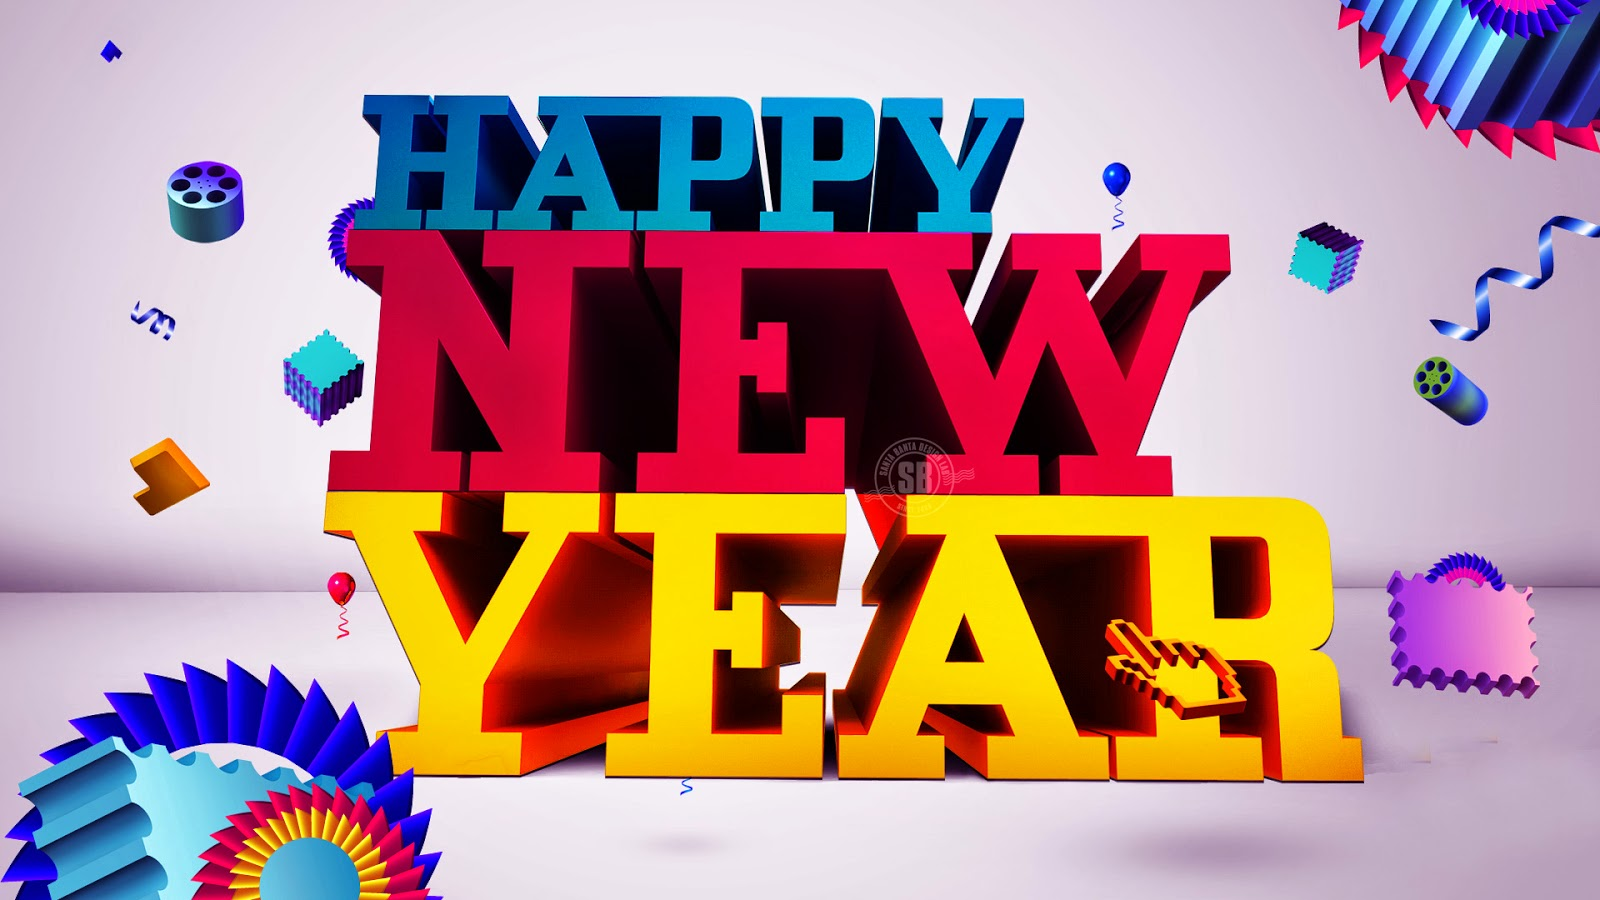 Happy New Year 2016 3D Images Free Download